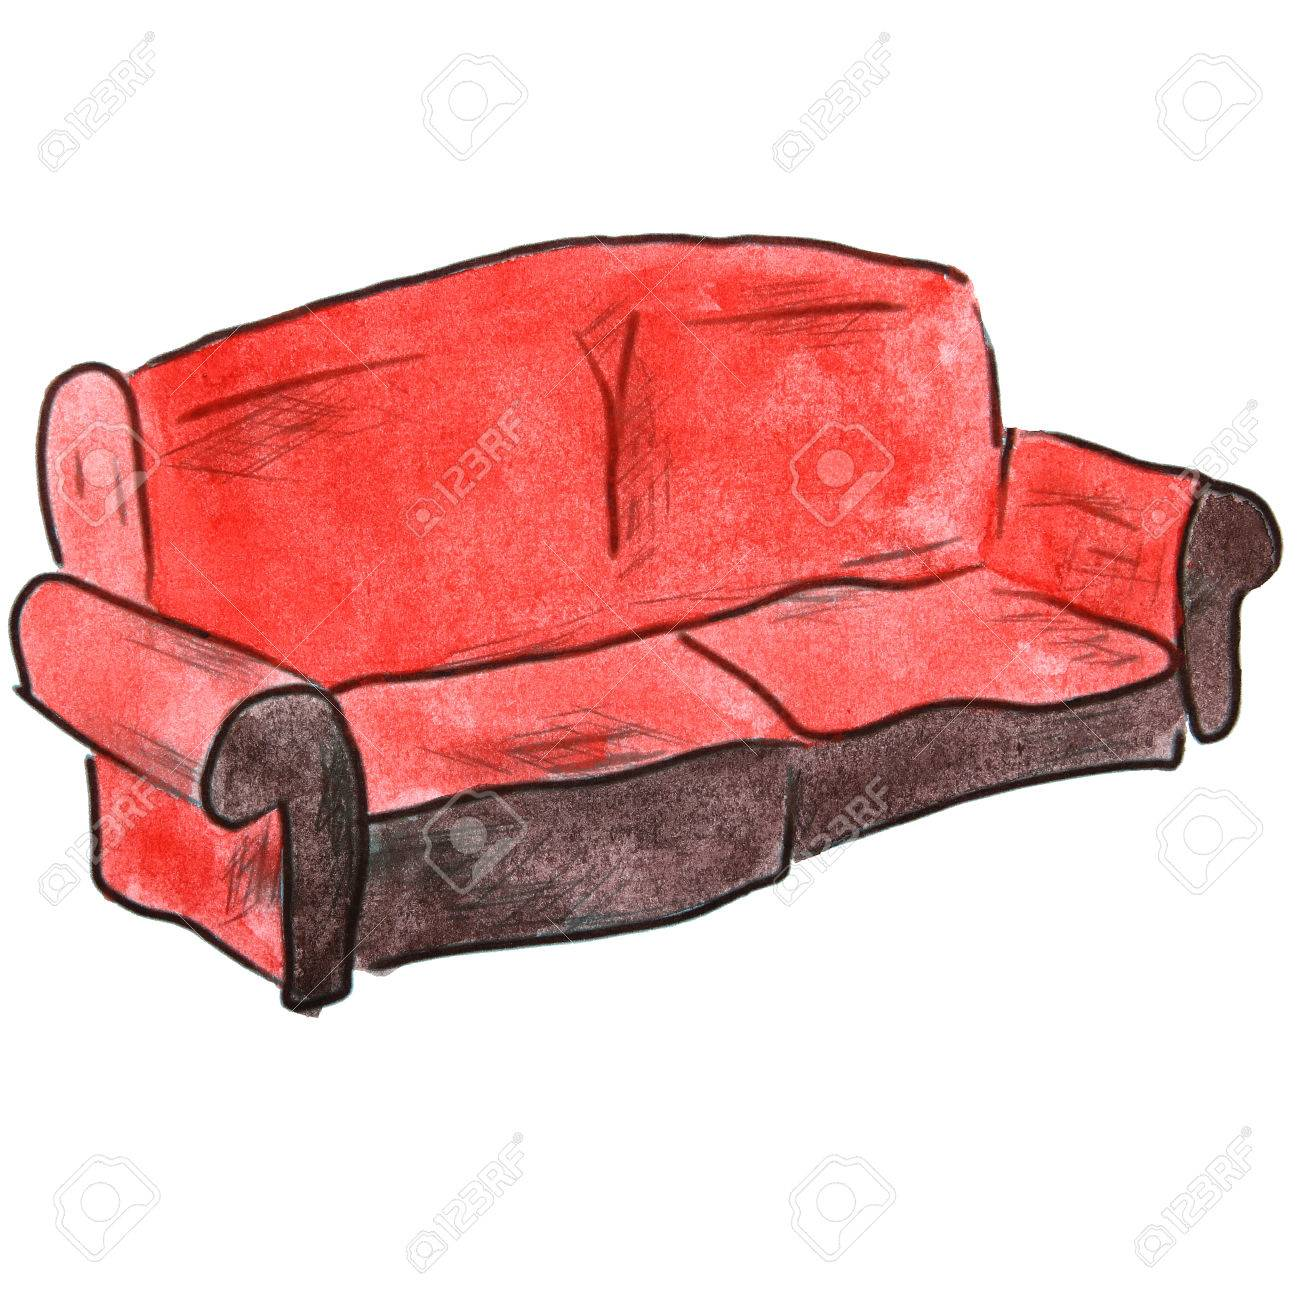 Watercolor Cartoon Drawing Red Sofa Isolated On White Background